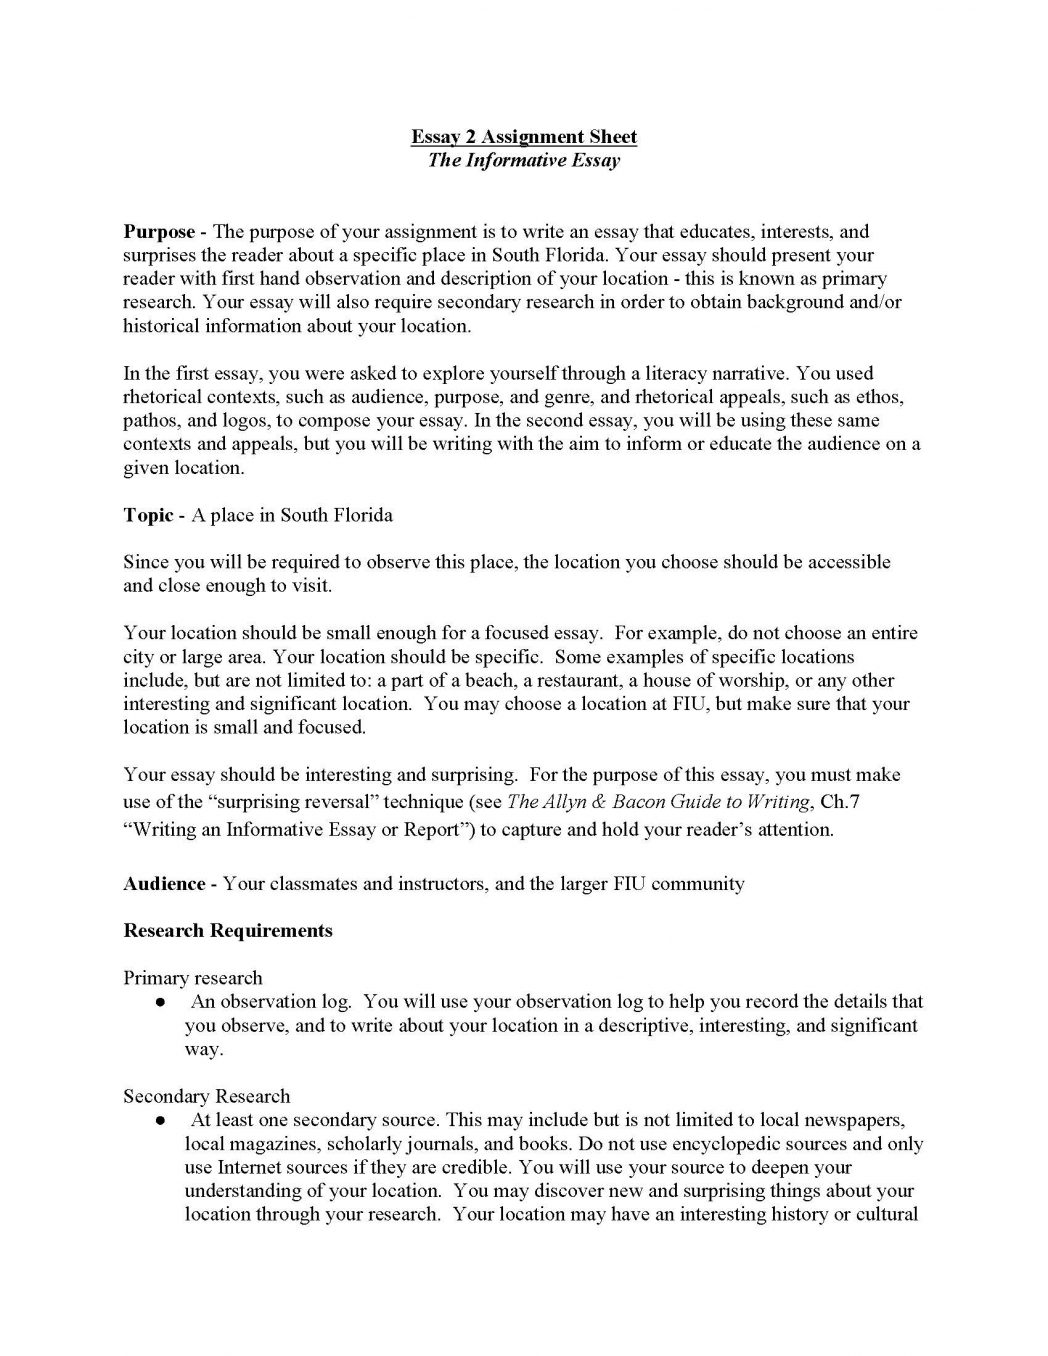 014 Essay Example How To Write This I Believe Synthesis Topic Ideas Informative Research Topics Samples Unit Assignment P Good Template Fantastic A Things On What Full